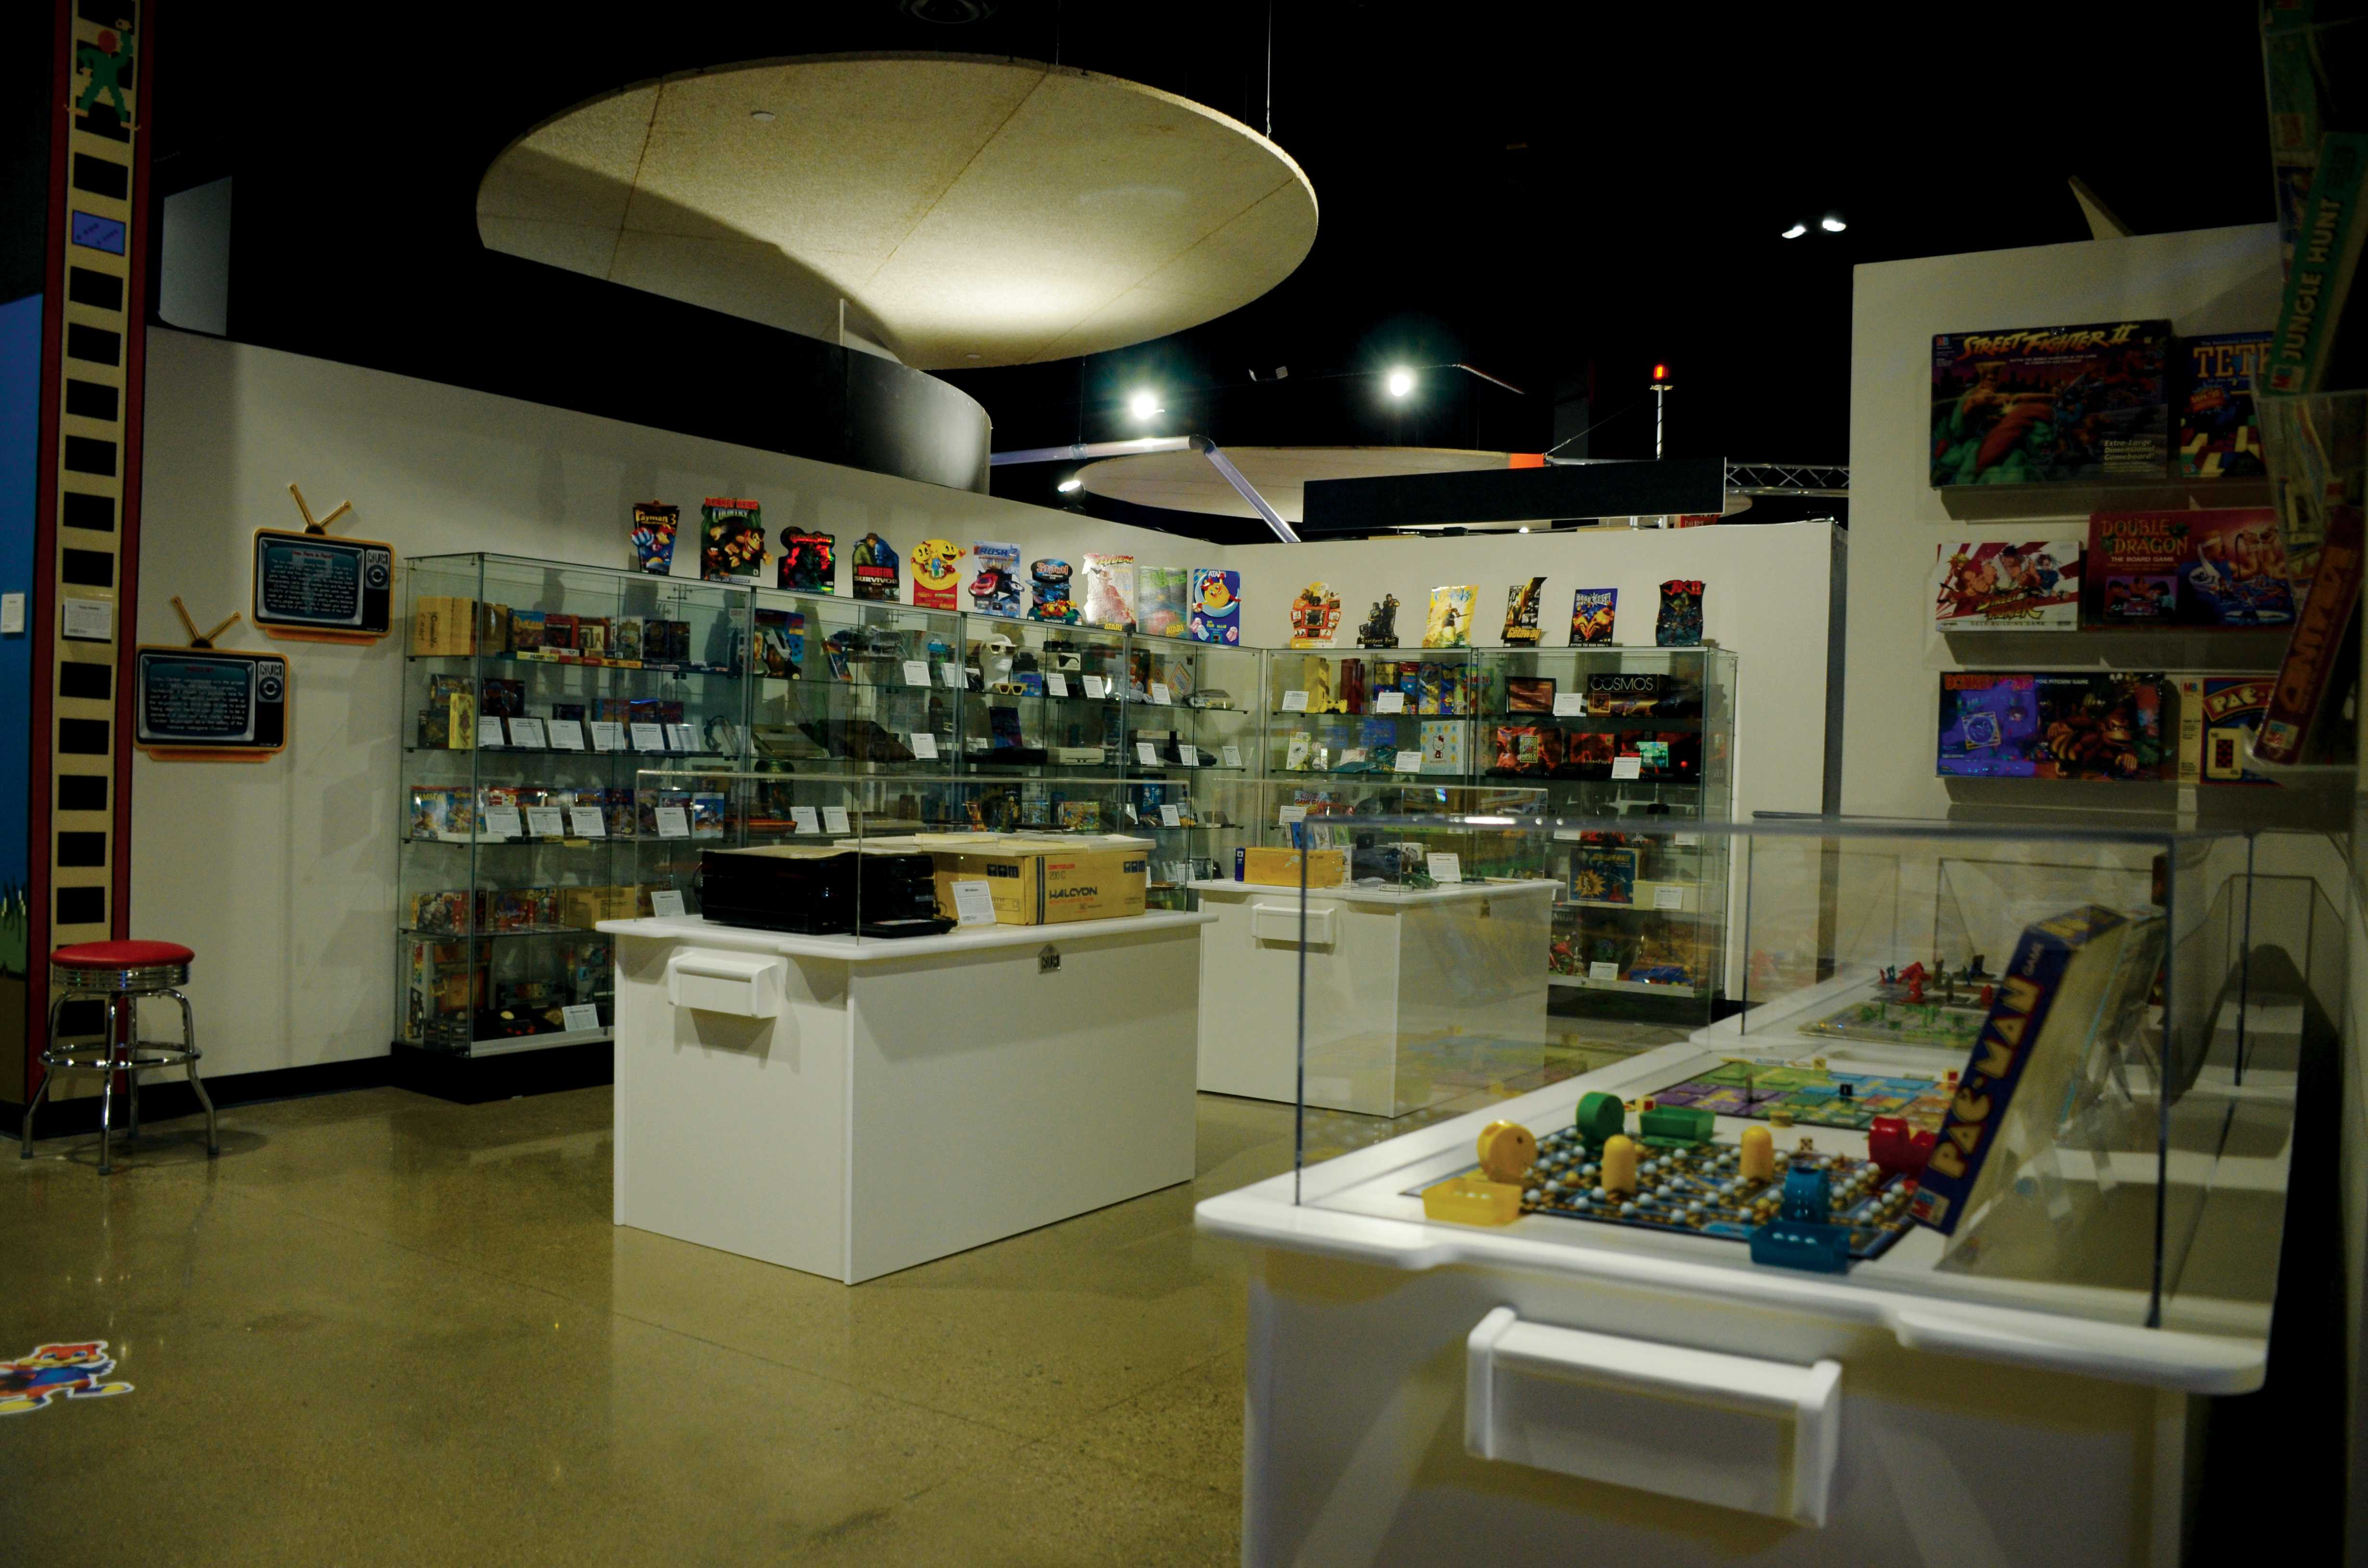 Video game memorabilia lines the walls of the museum.